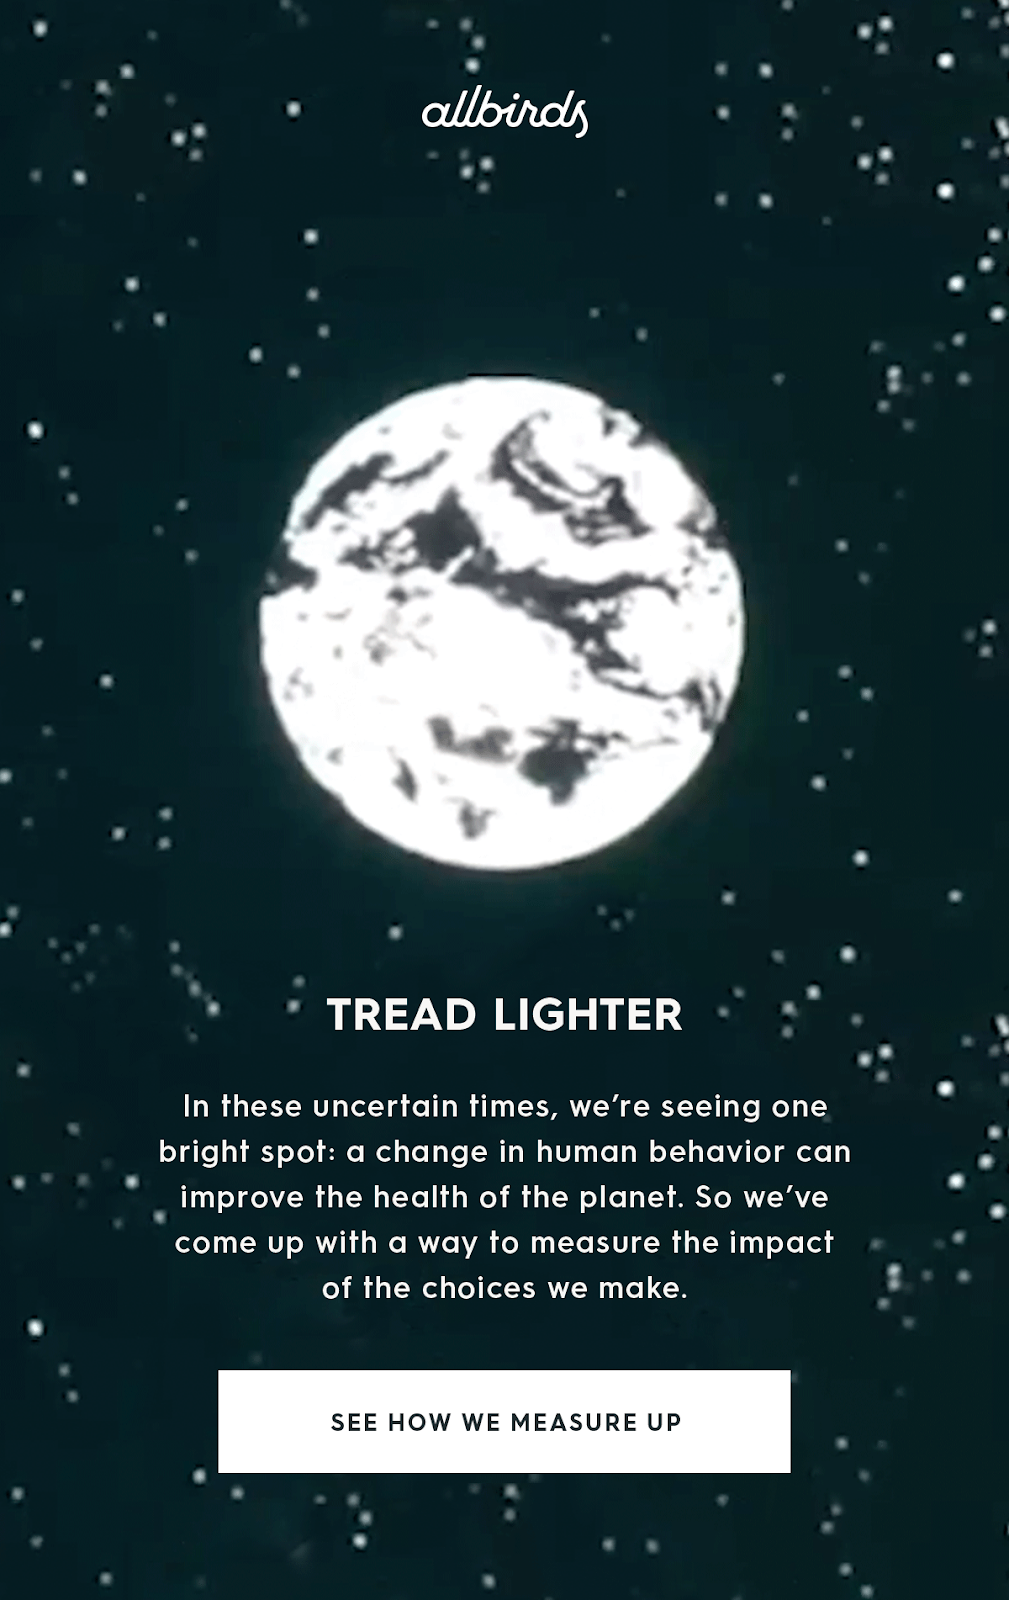 tread lighter - serious campaign